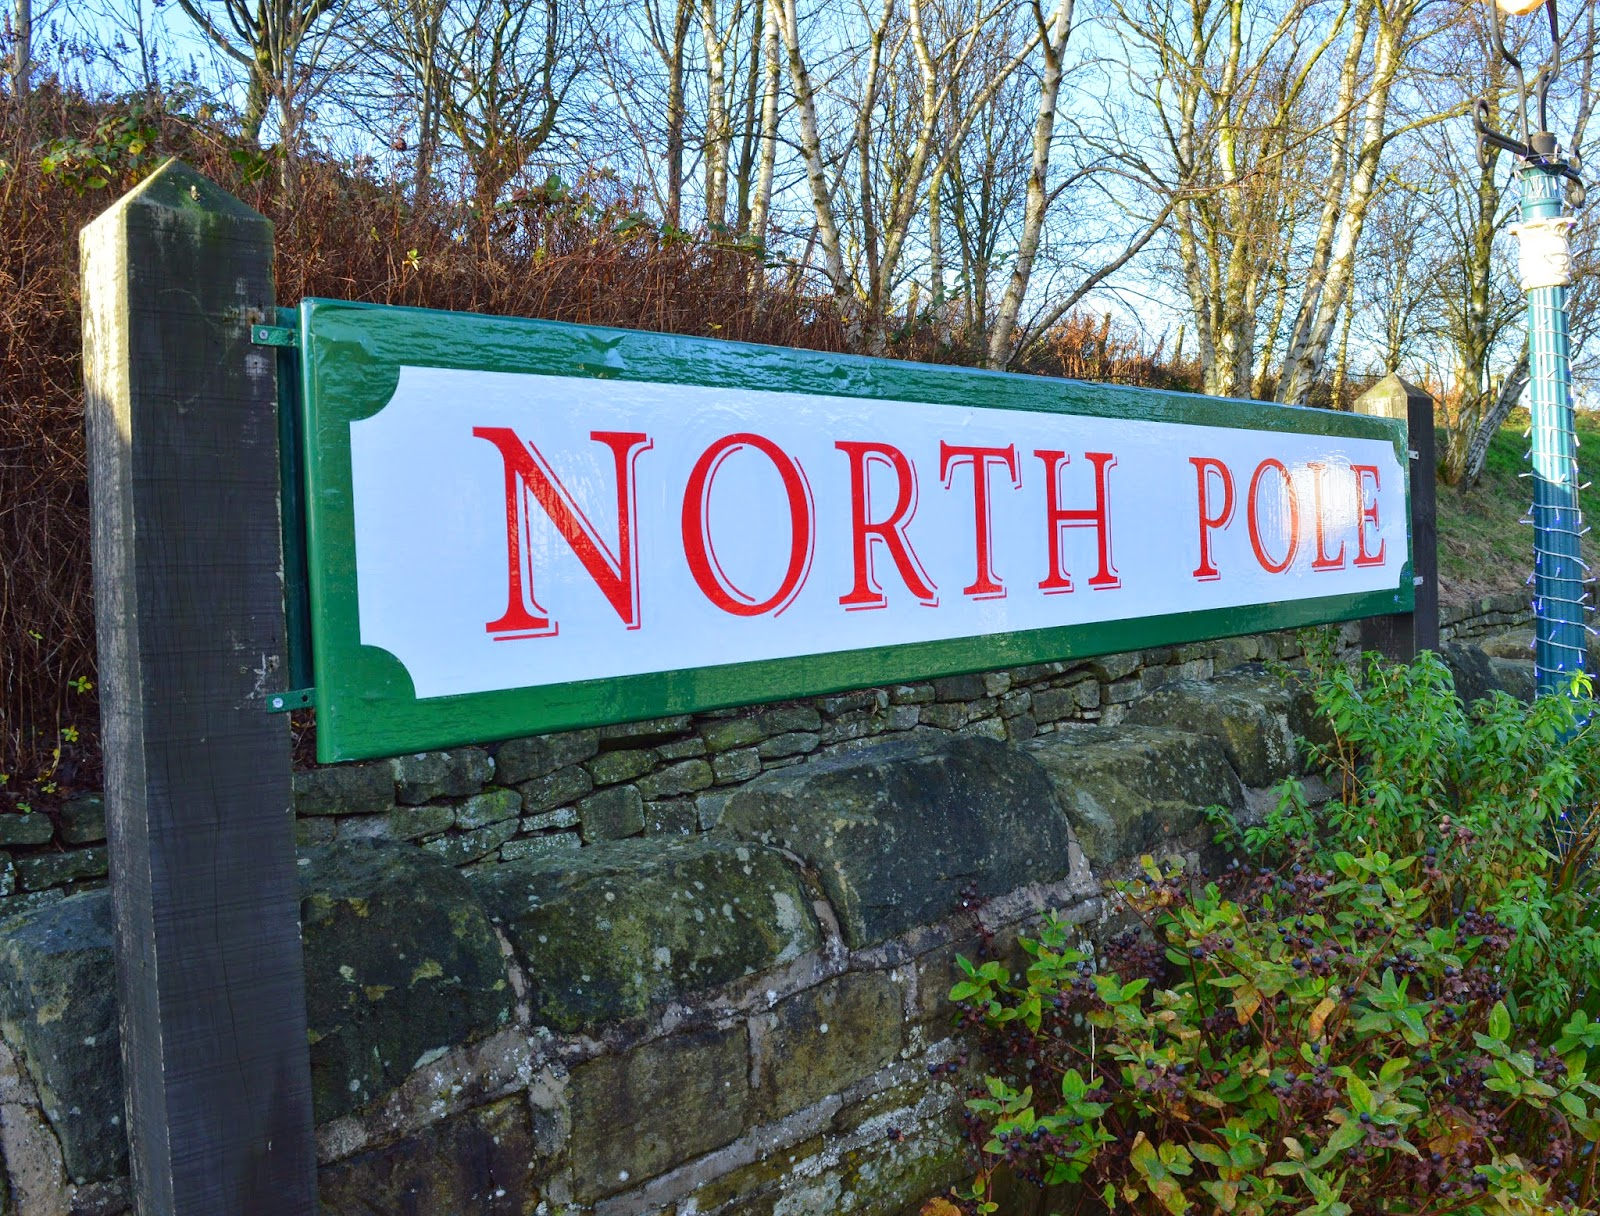 Tanfield Railway | North Pole Express Review